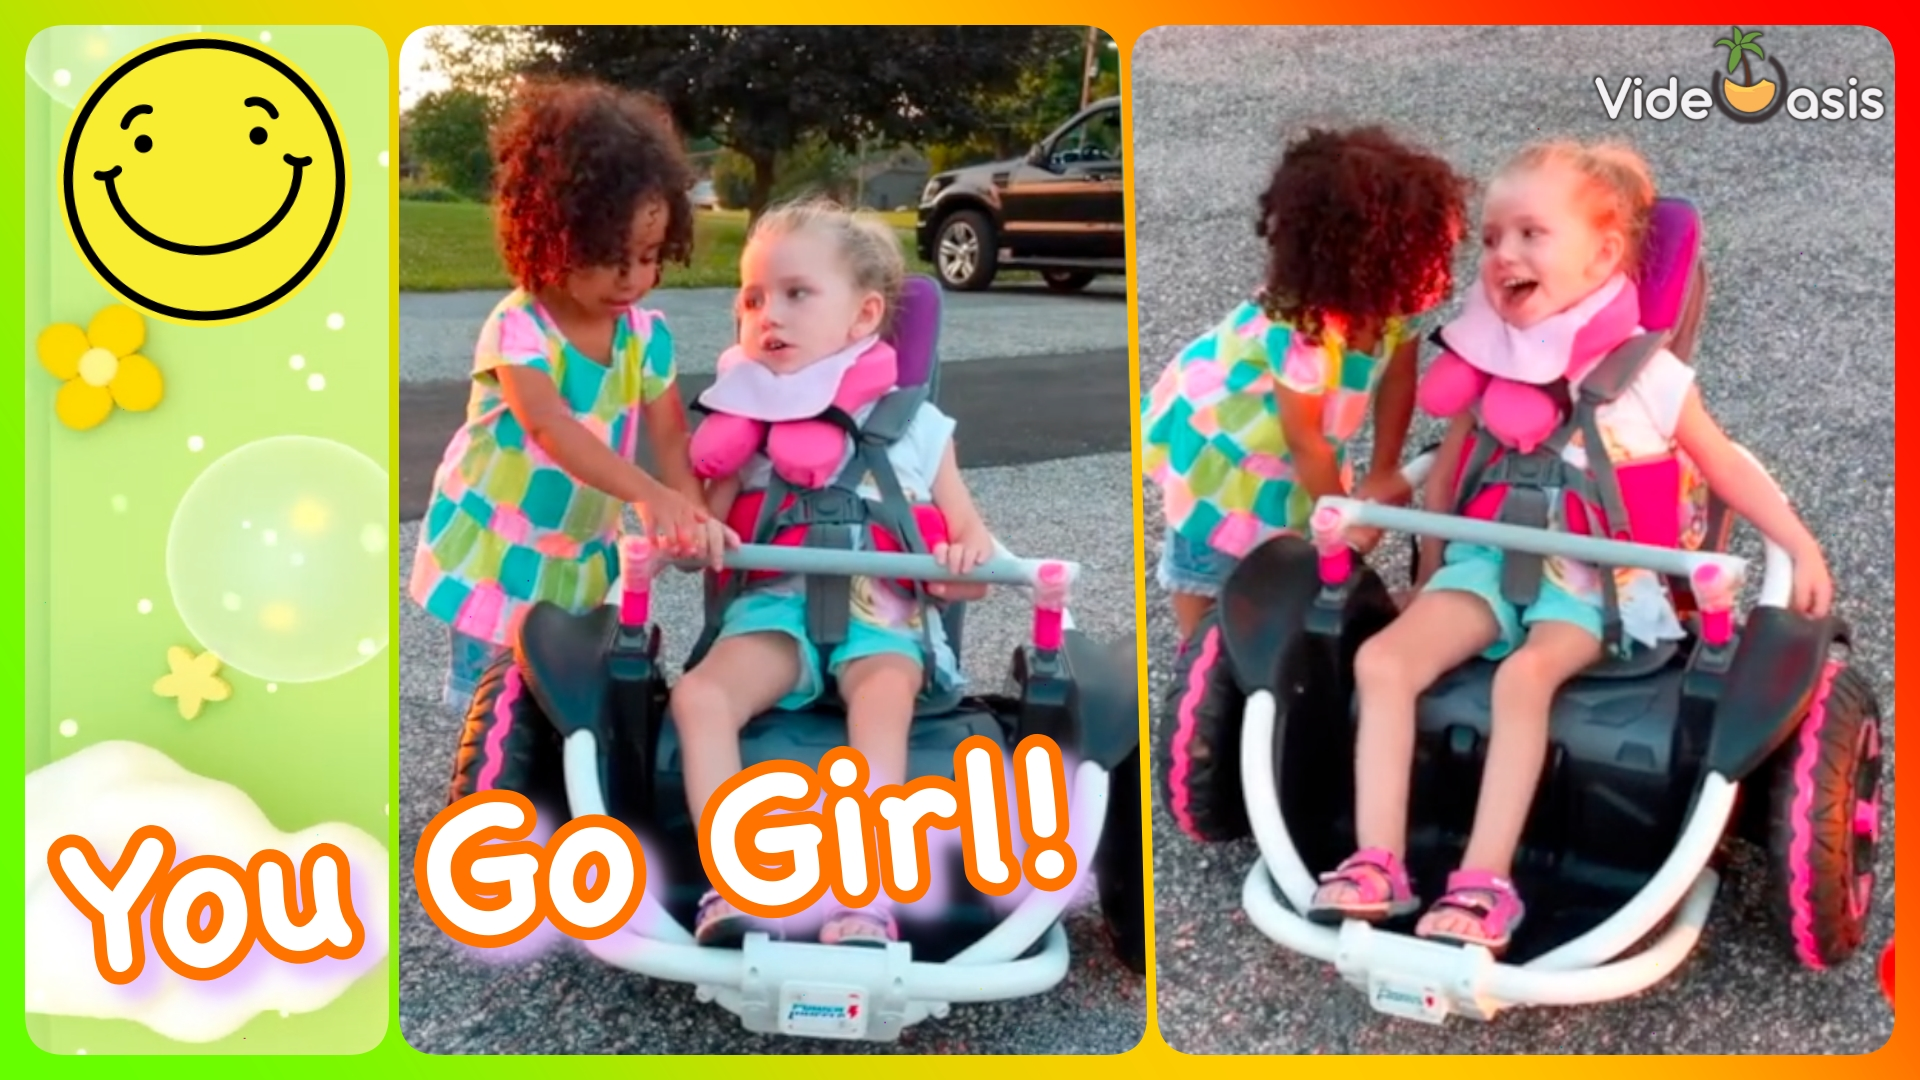 Little girl encourage her friend to drive a motorized wheelchair  VideOasis